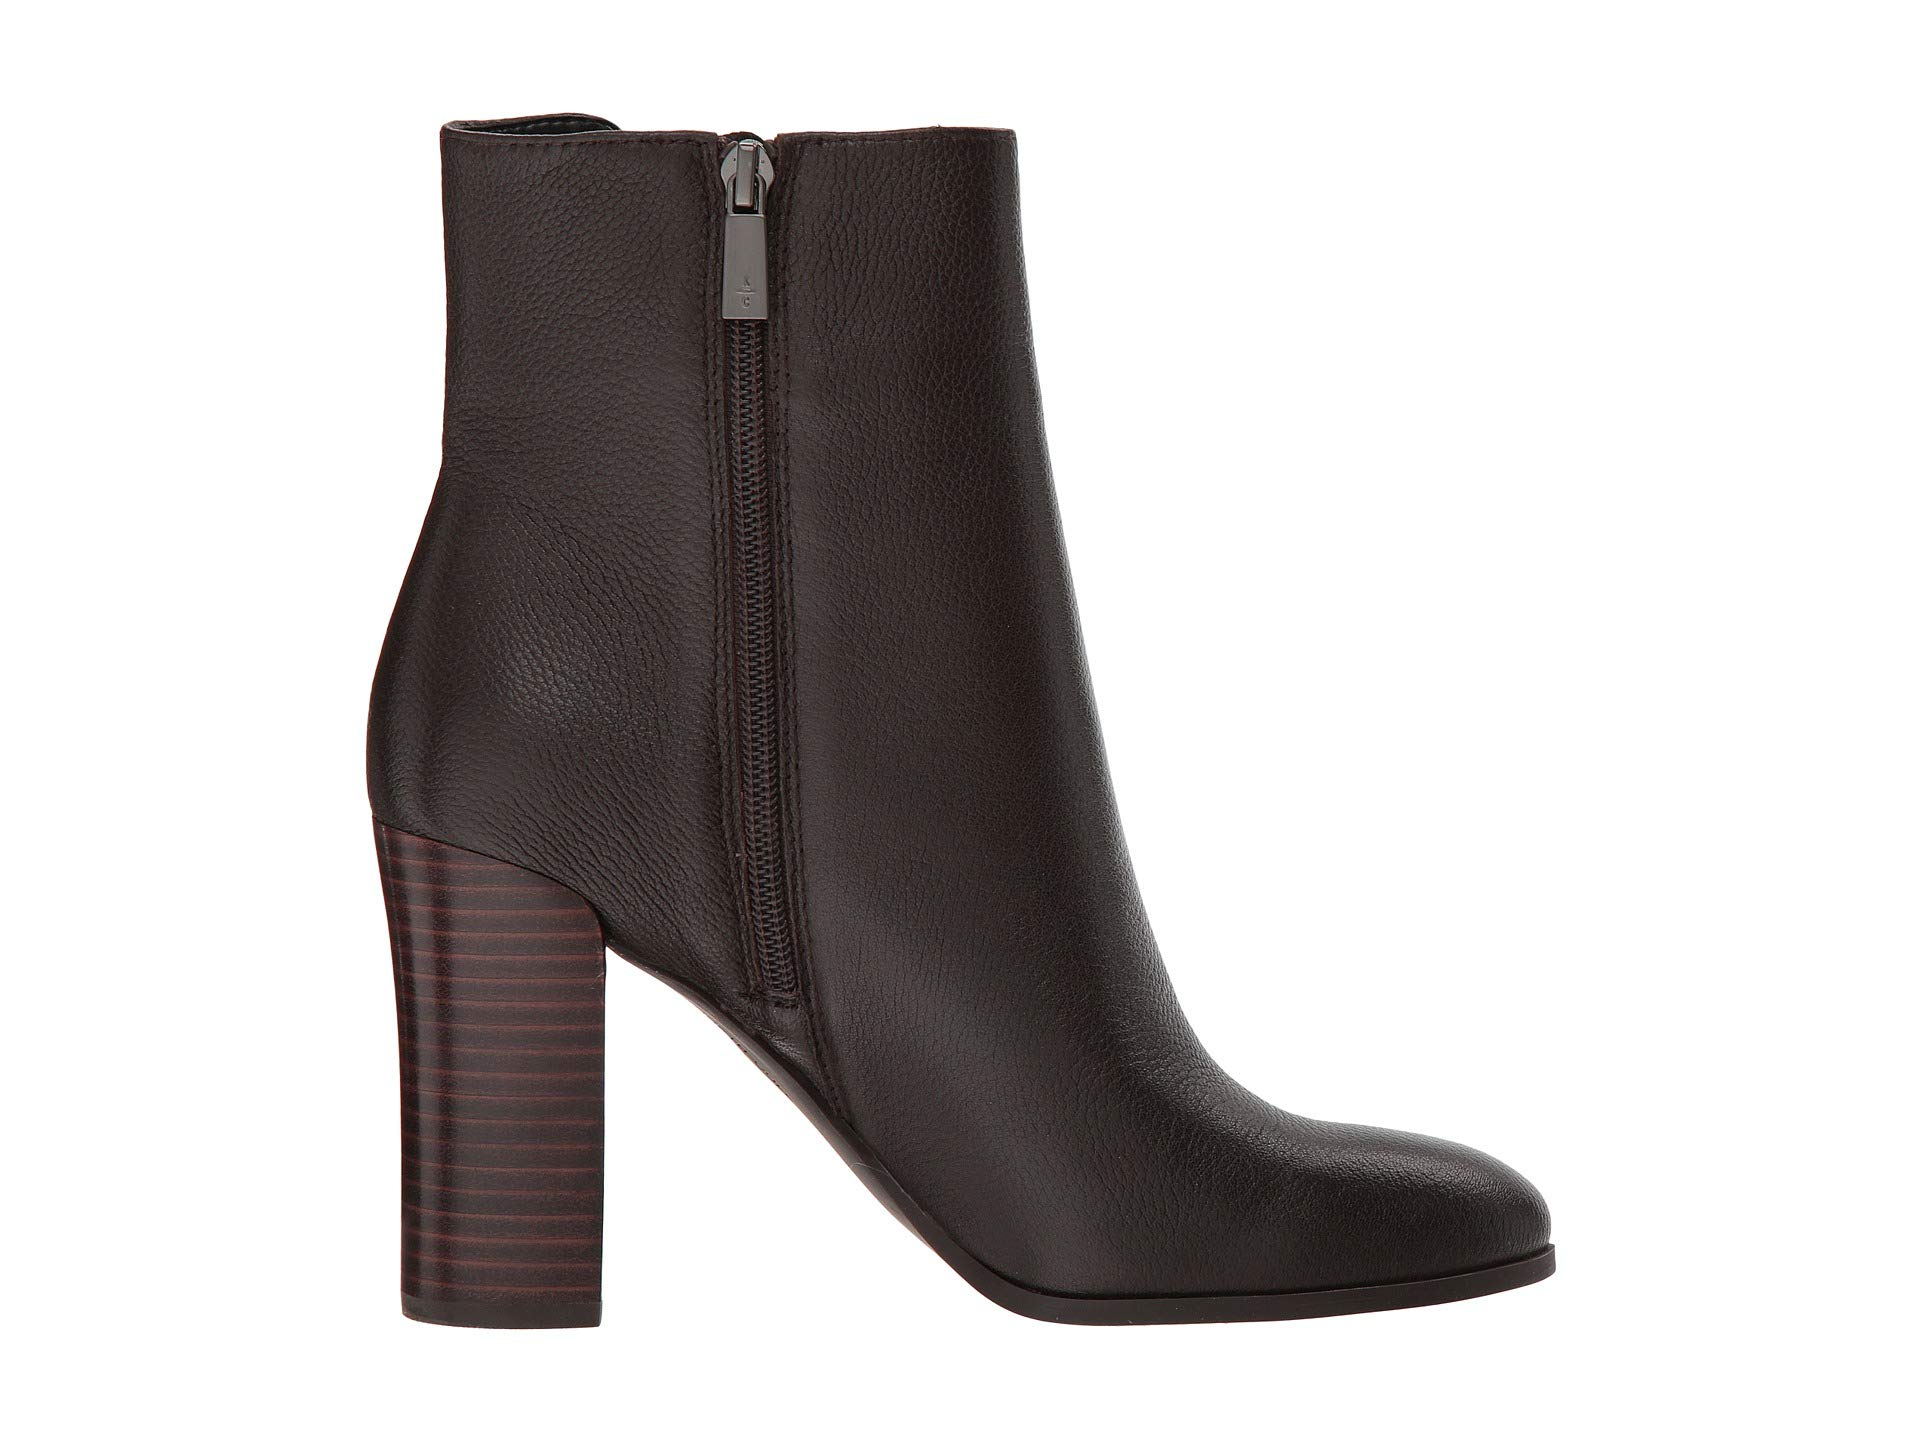 York Kenneth Bootie New Chocolate Justin Leather Cole wEEPqrpUc